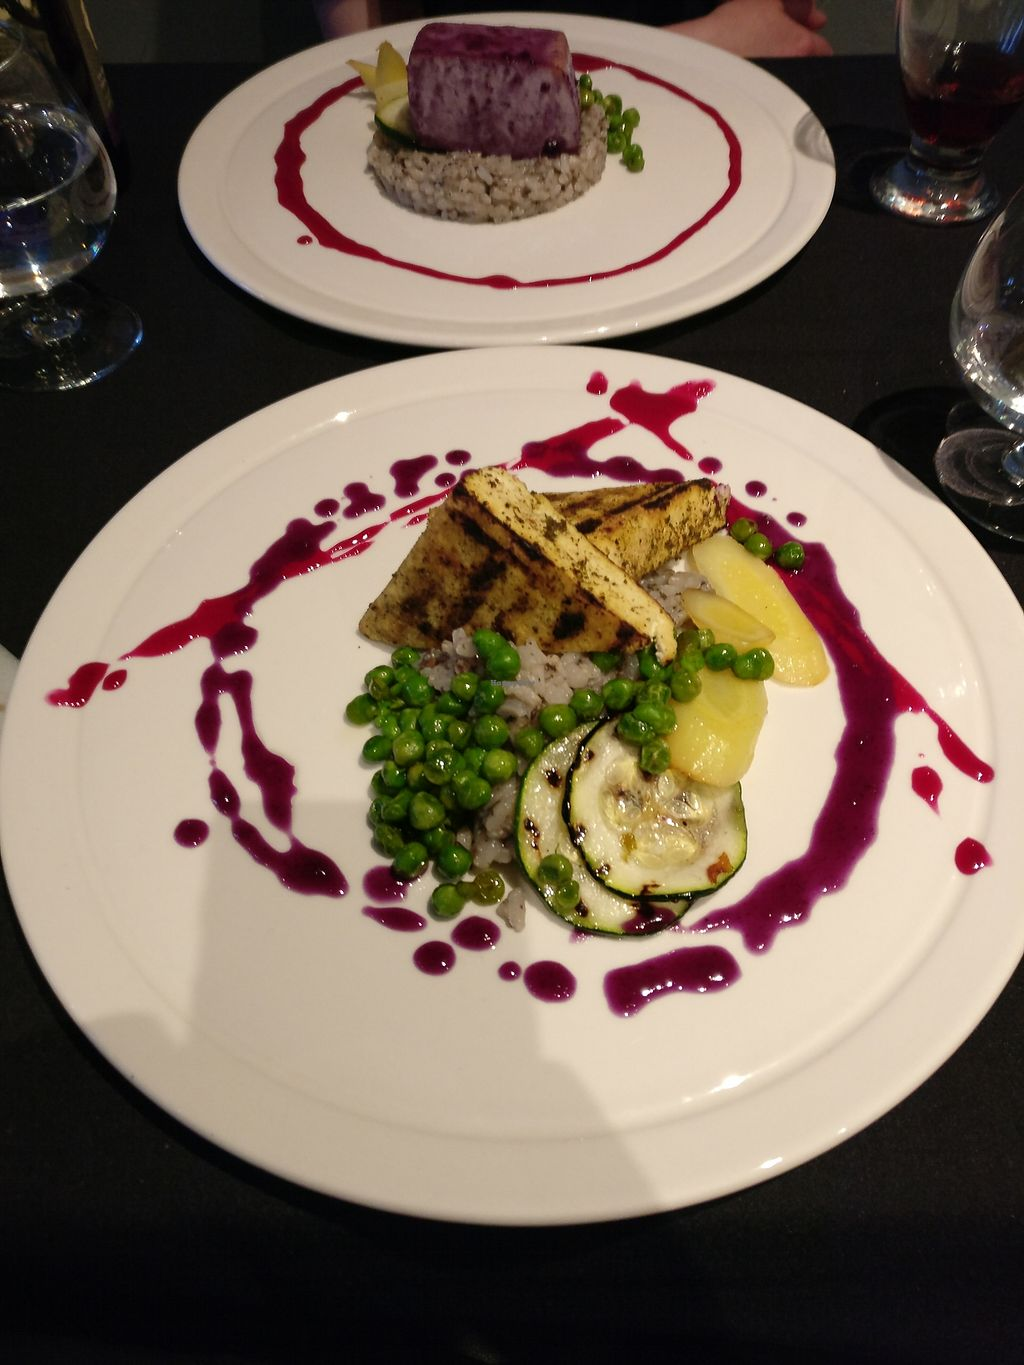 """Photo of Fiddlehead Bistro  by <a href=""""/members/profile/JoeyMorin"""">JoeyMorin</a> <br/>Herb encrusted tofu, mushroom risotto, roasted veg and rosemary purple carrot reduction.  <br/> June 21, 2017  - <a href='/contact/abuse/image/94352/271604'>Report</a>"""